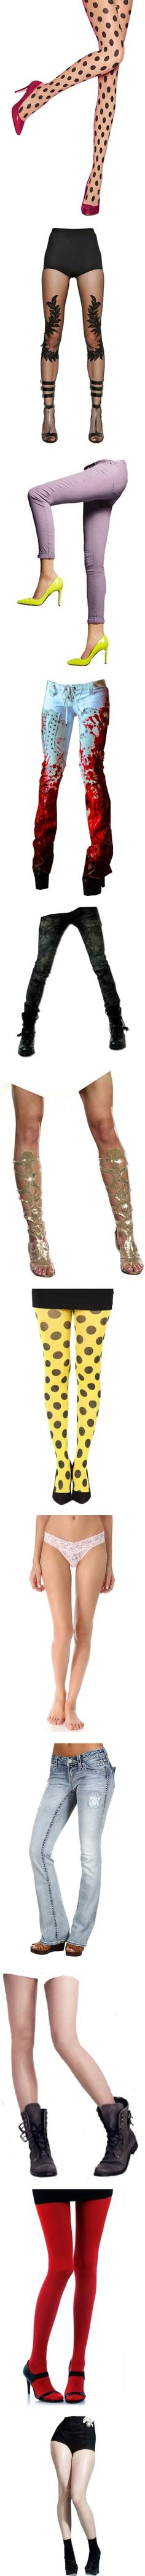 """Dolls - Legs Standing Pt 2"" by lois-lane-kent ❤ liked on Polyvore"